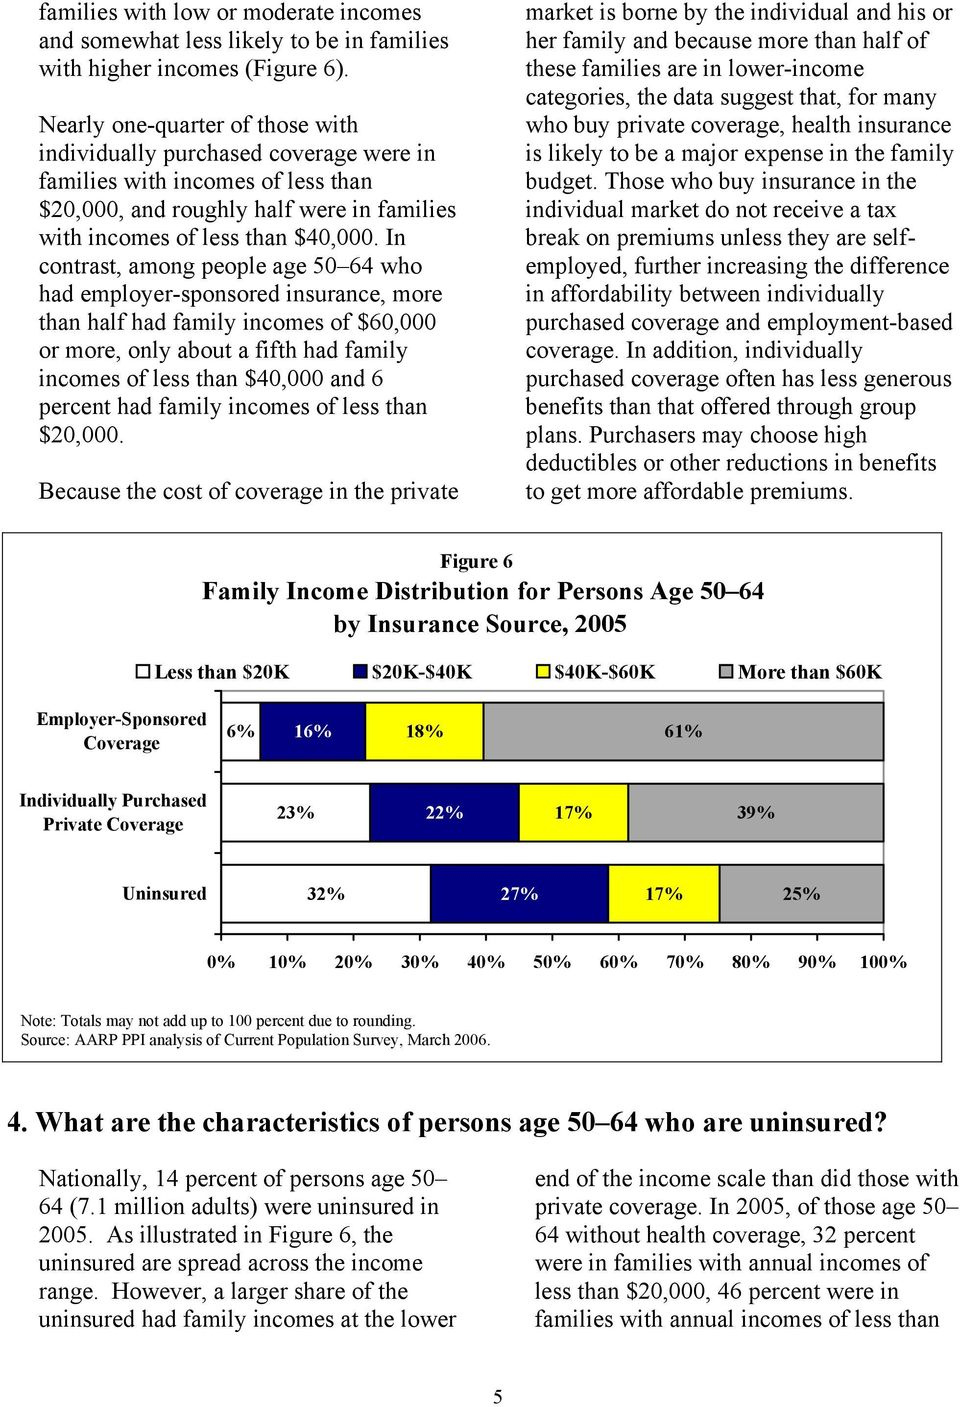 In contrast, among people age 50 64 who had employer-sponsored insurance, more than half had family incomes of $60,000 or more, only about a fifth had family incomes of less than $40,000 and 6